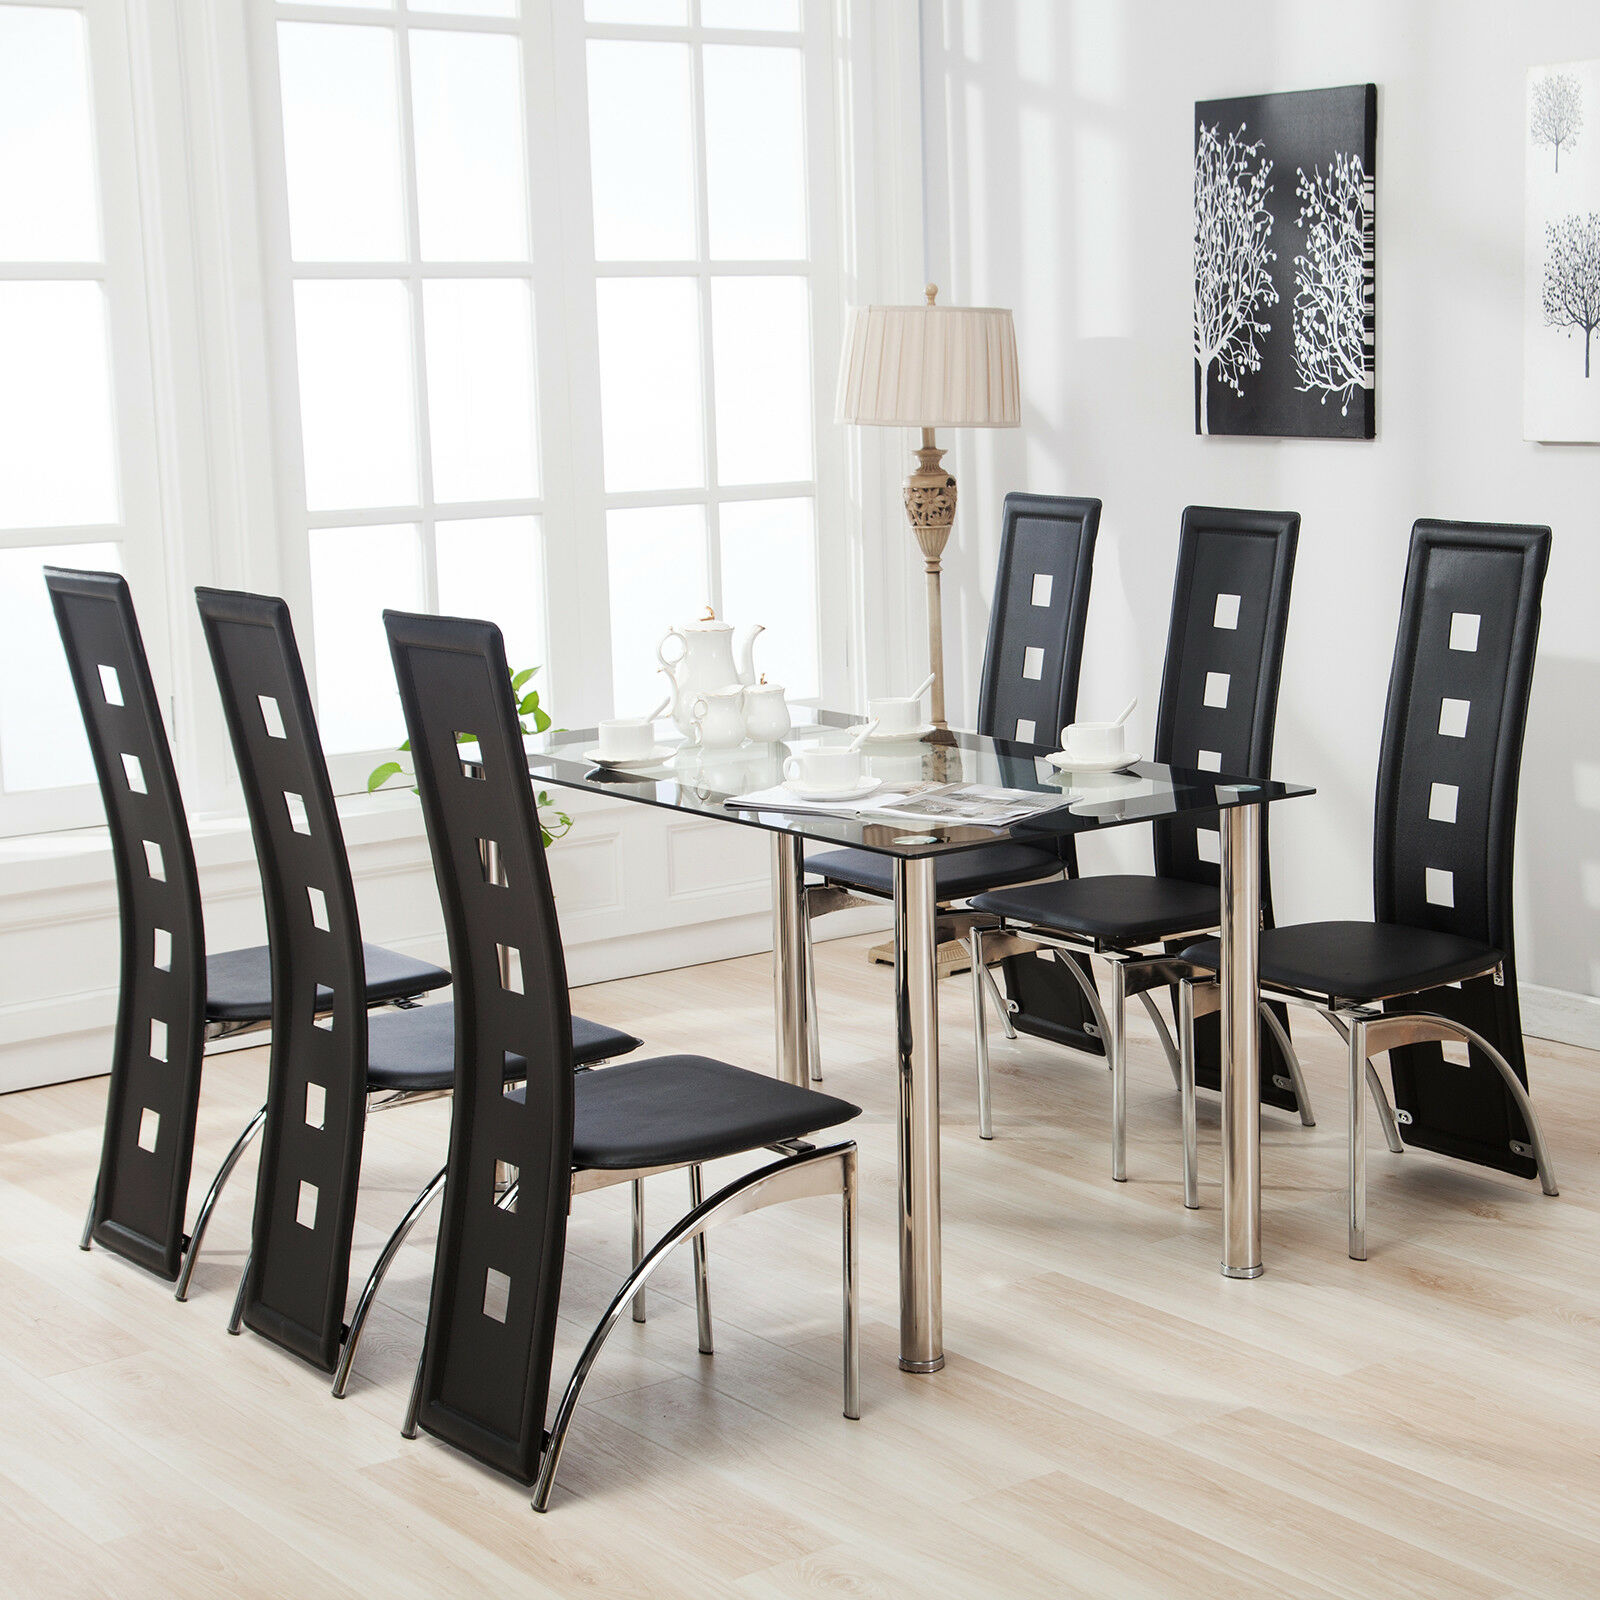 6 black high back chairs glass dining table sets modern dining room furniture